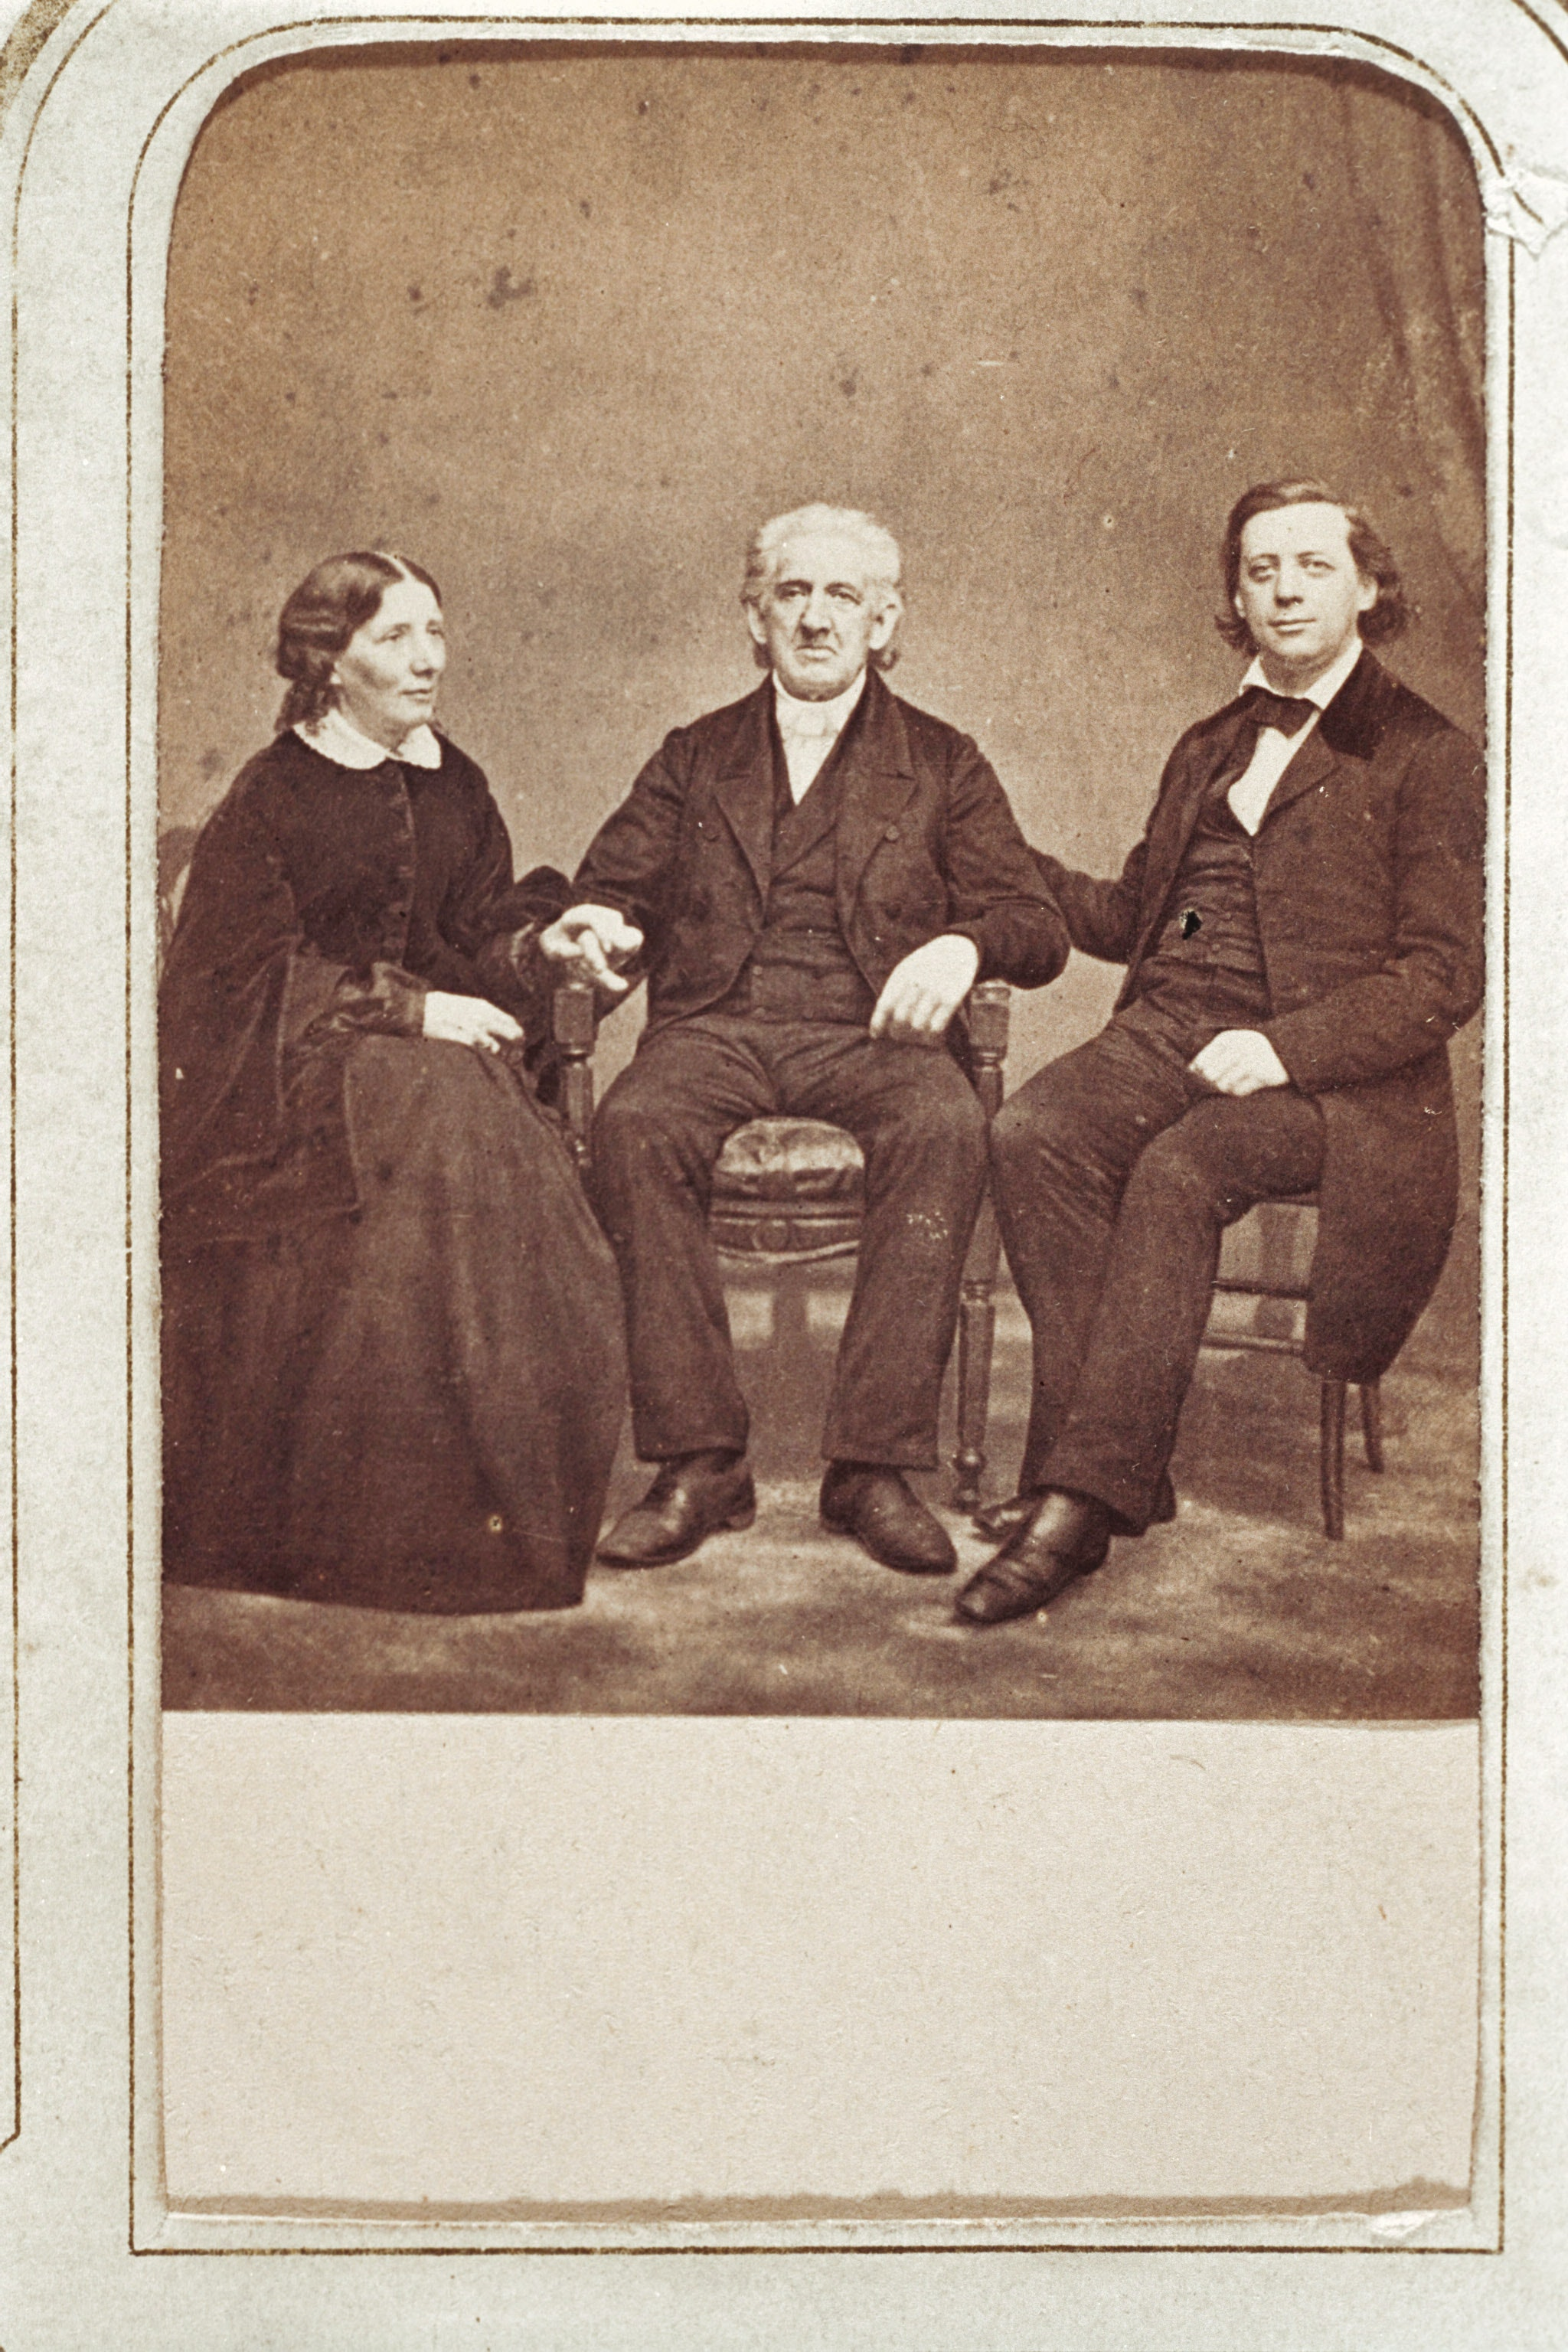 Group portrait of members of the the Beecher family. Includes, from left to right, Harriet Beecher Stowe, Lyman Beecher, and Henry Ward Beecher